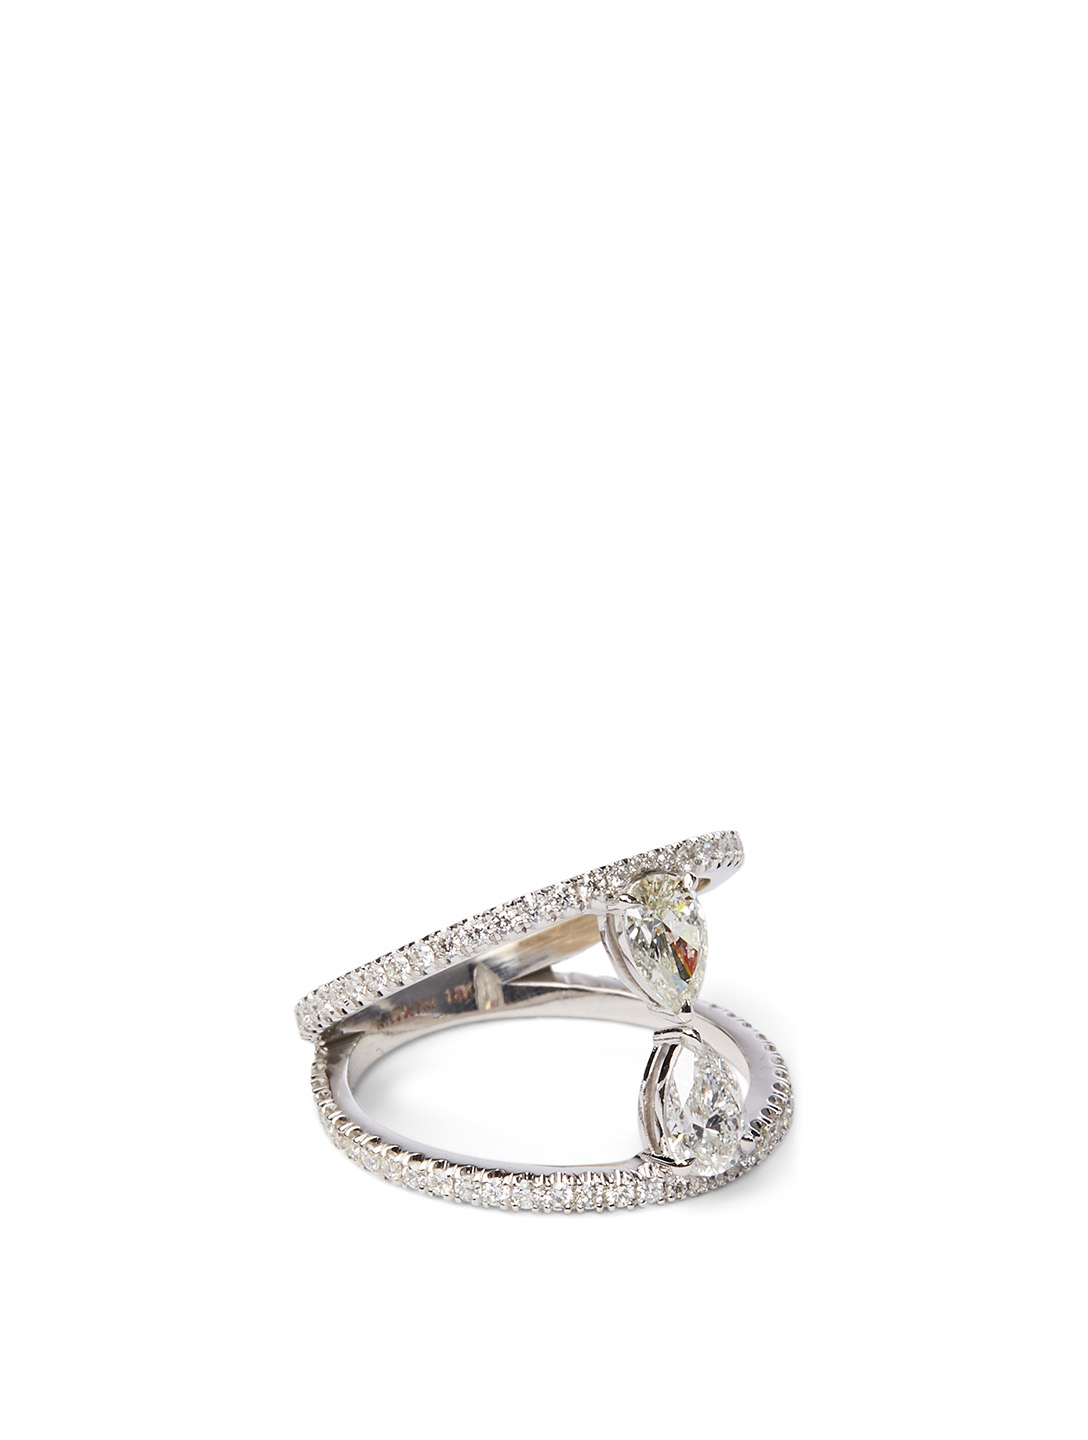 KATKIM Duet 18K White Gold Pear Ring Pavé Diamonds Women's Metallic